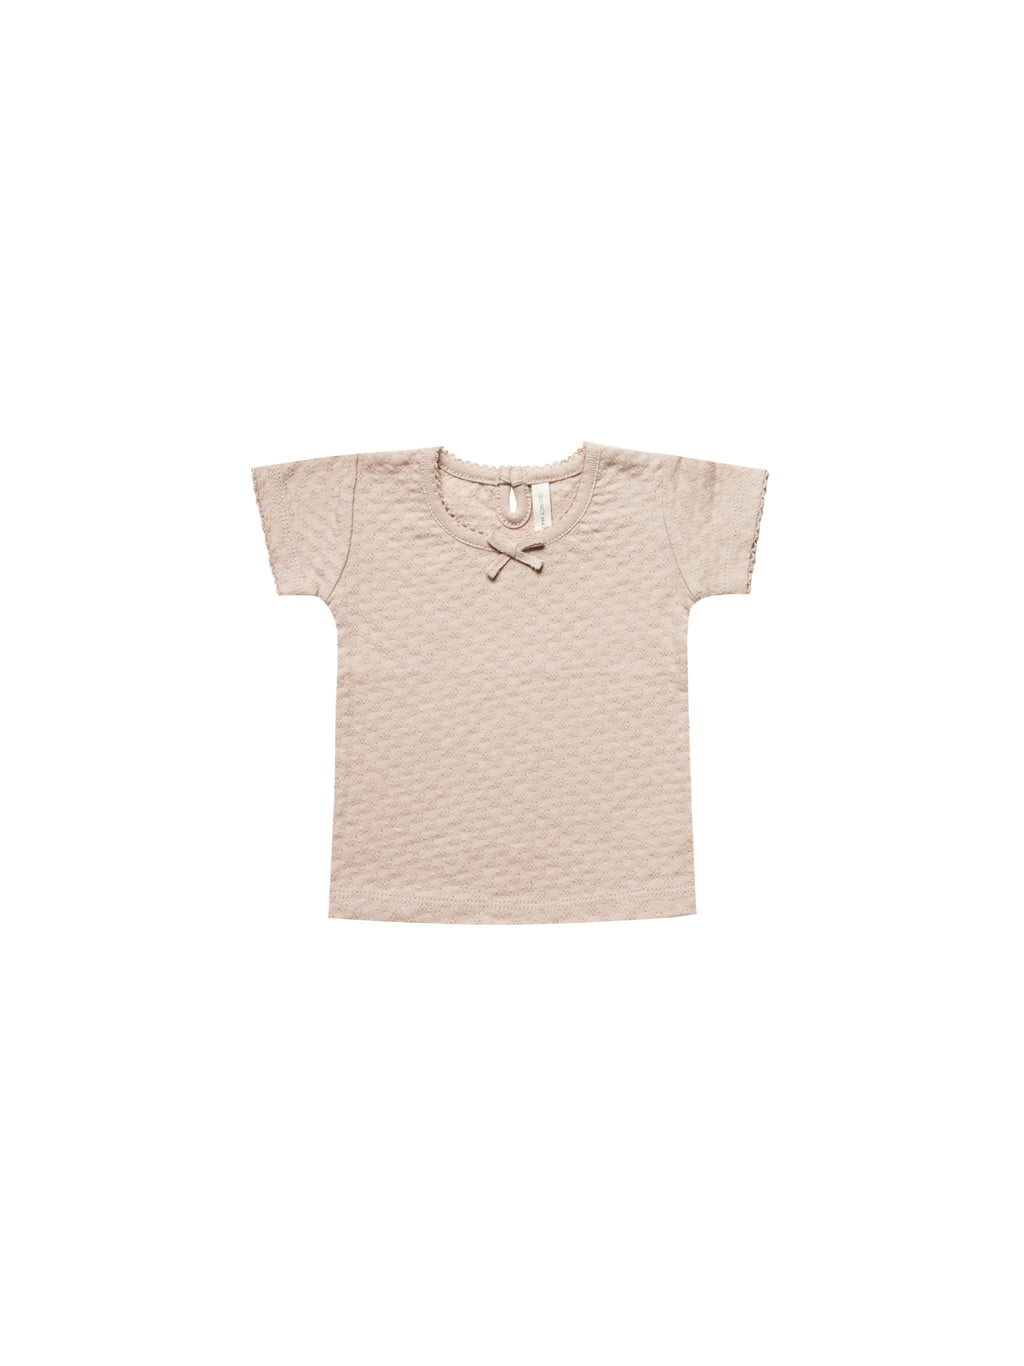 Quincy Mae - Pointelle Tee (Rose)